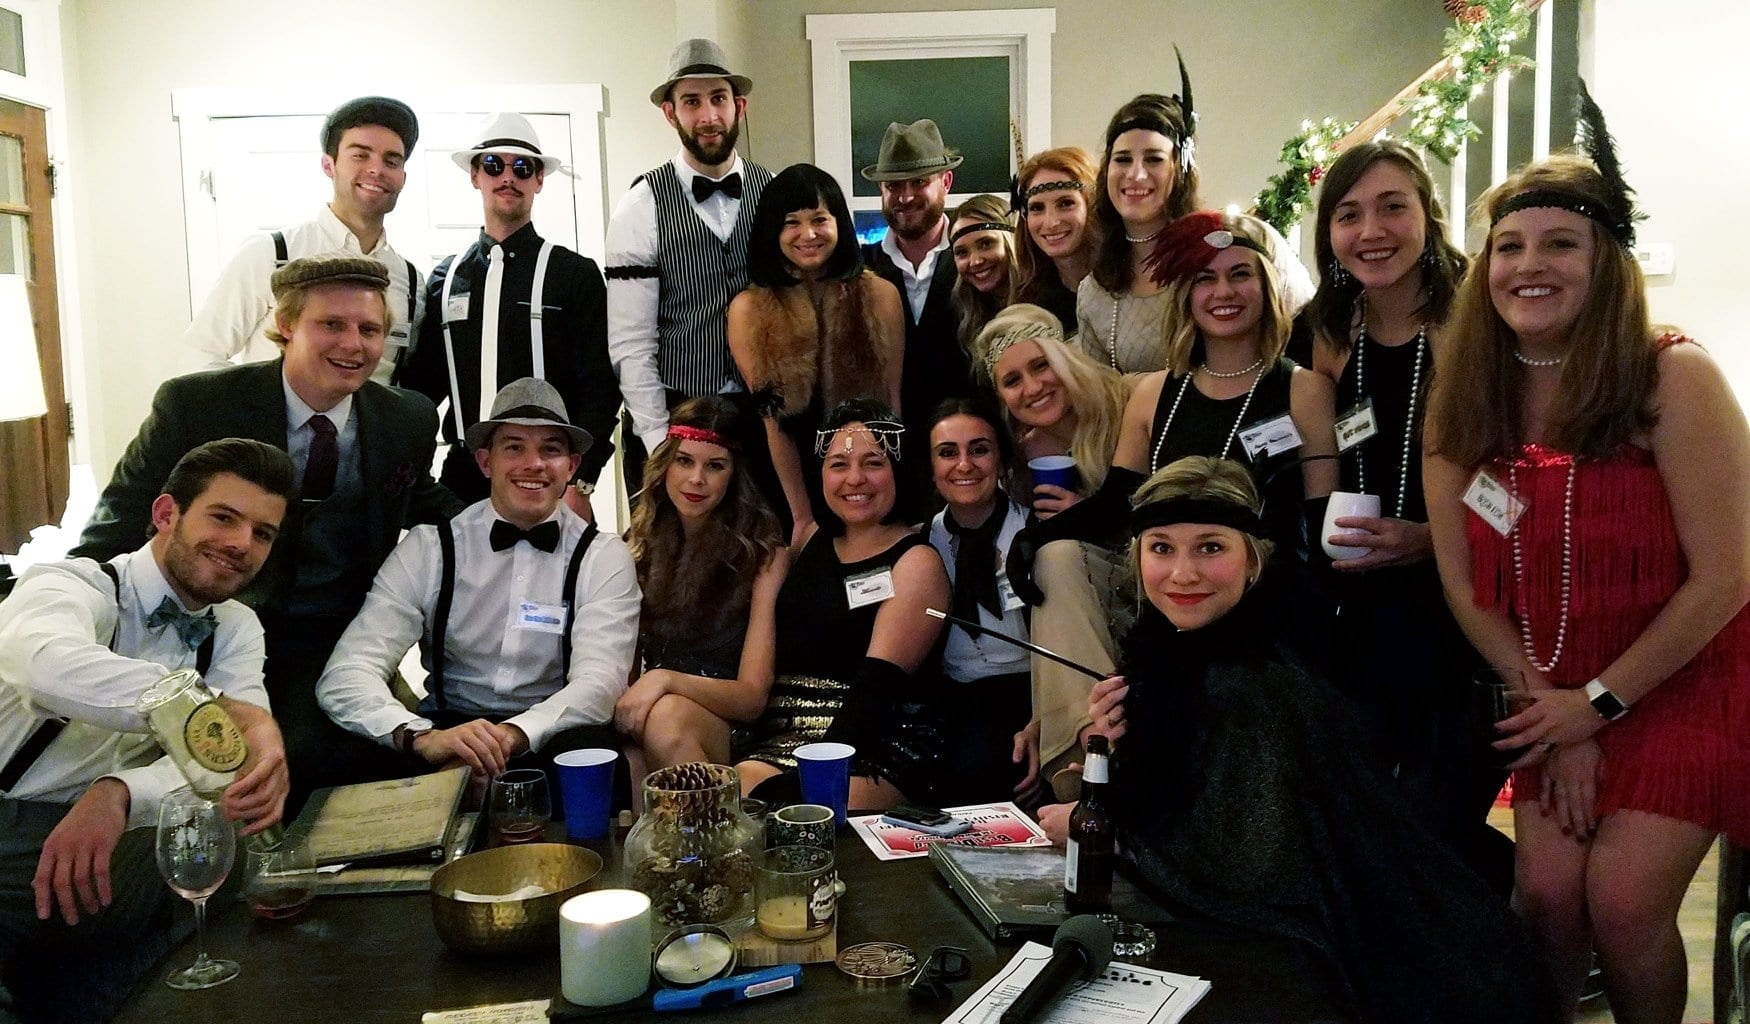 Check Out the 1920s Gatsby Murder Mystery Game